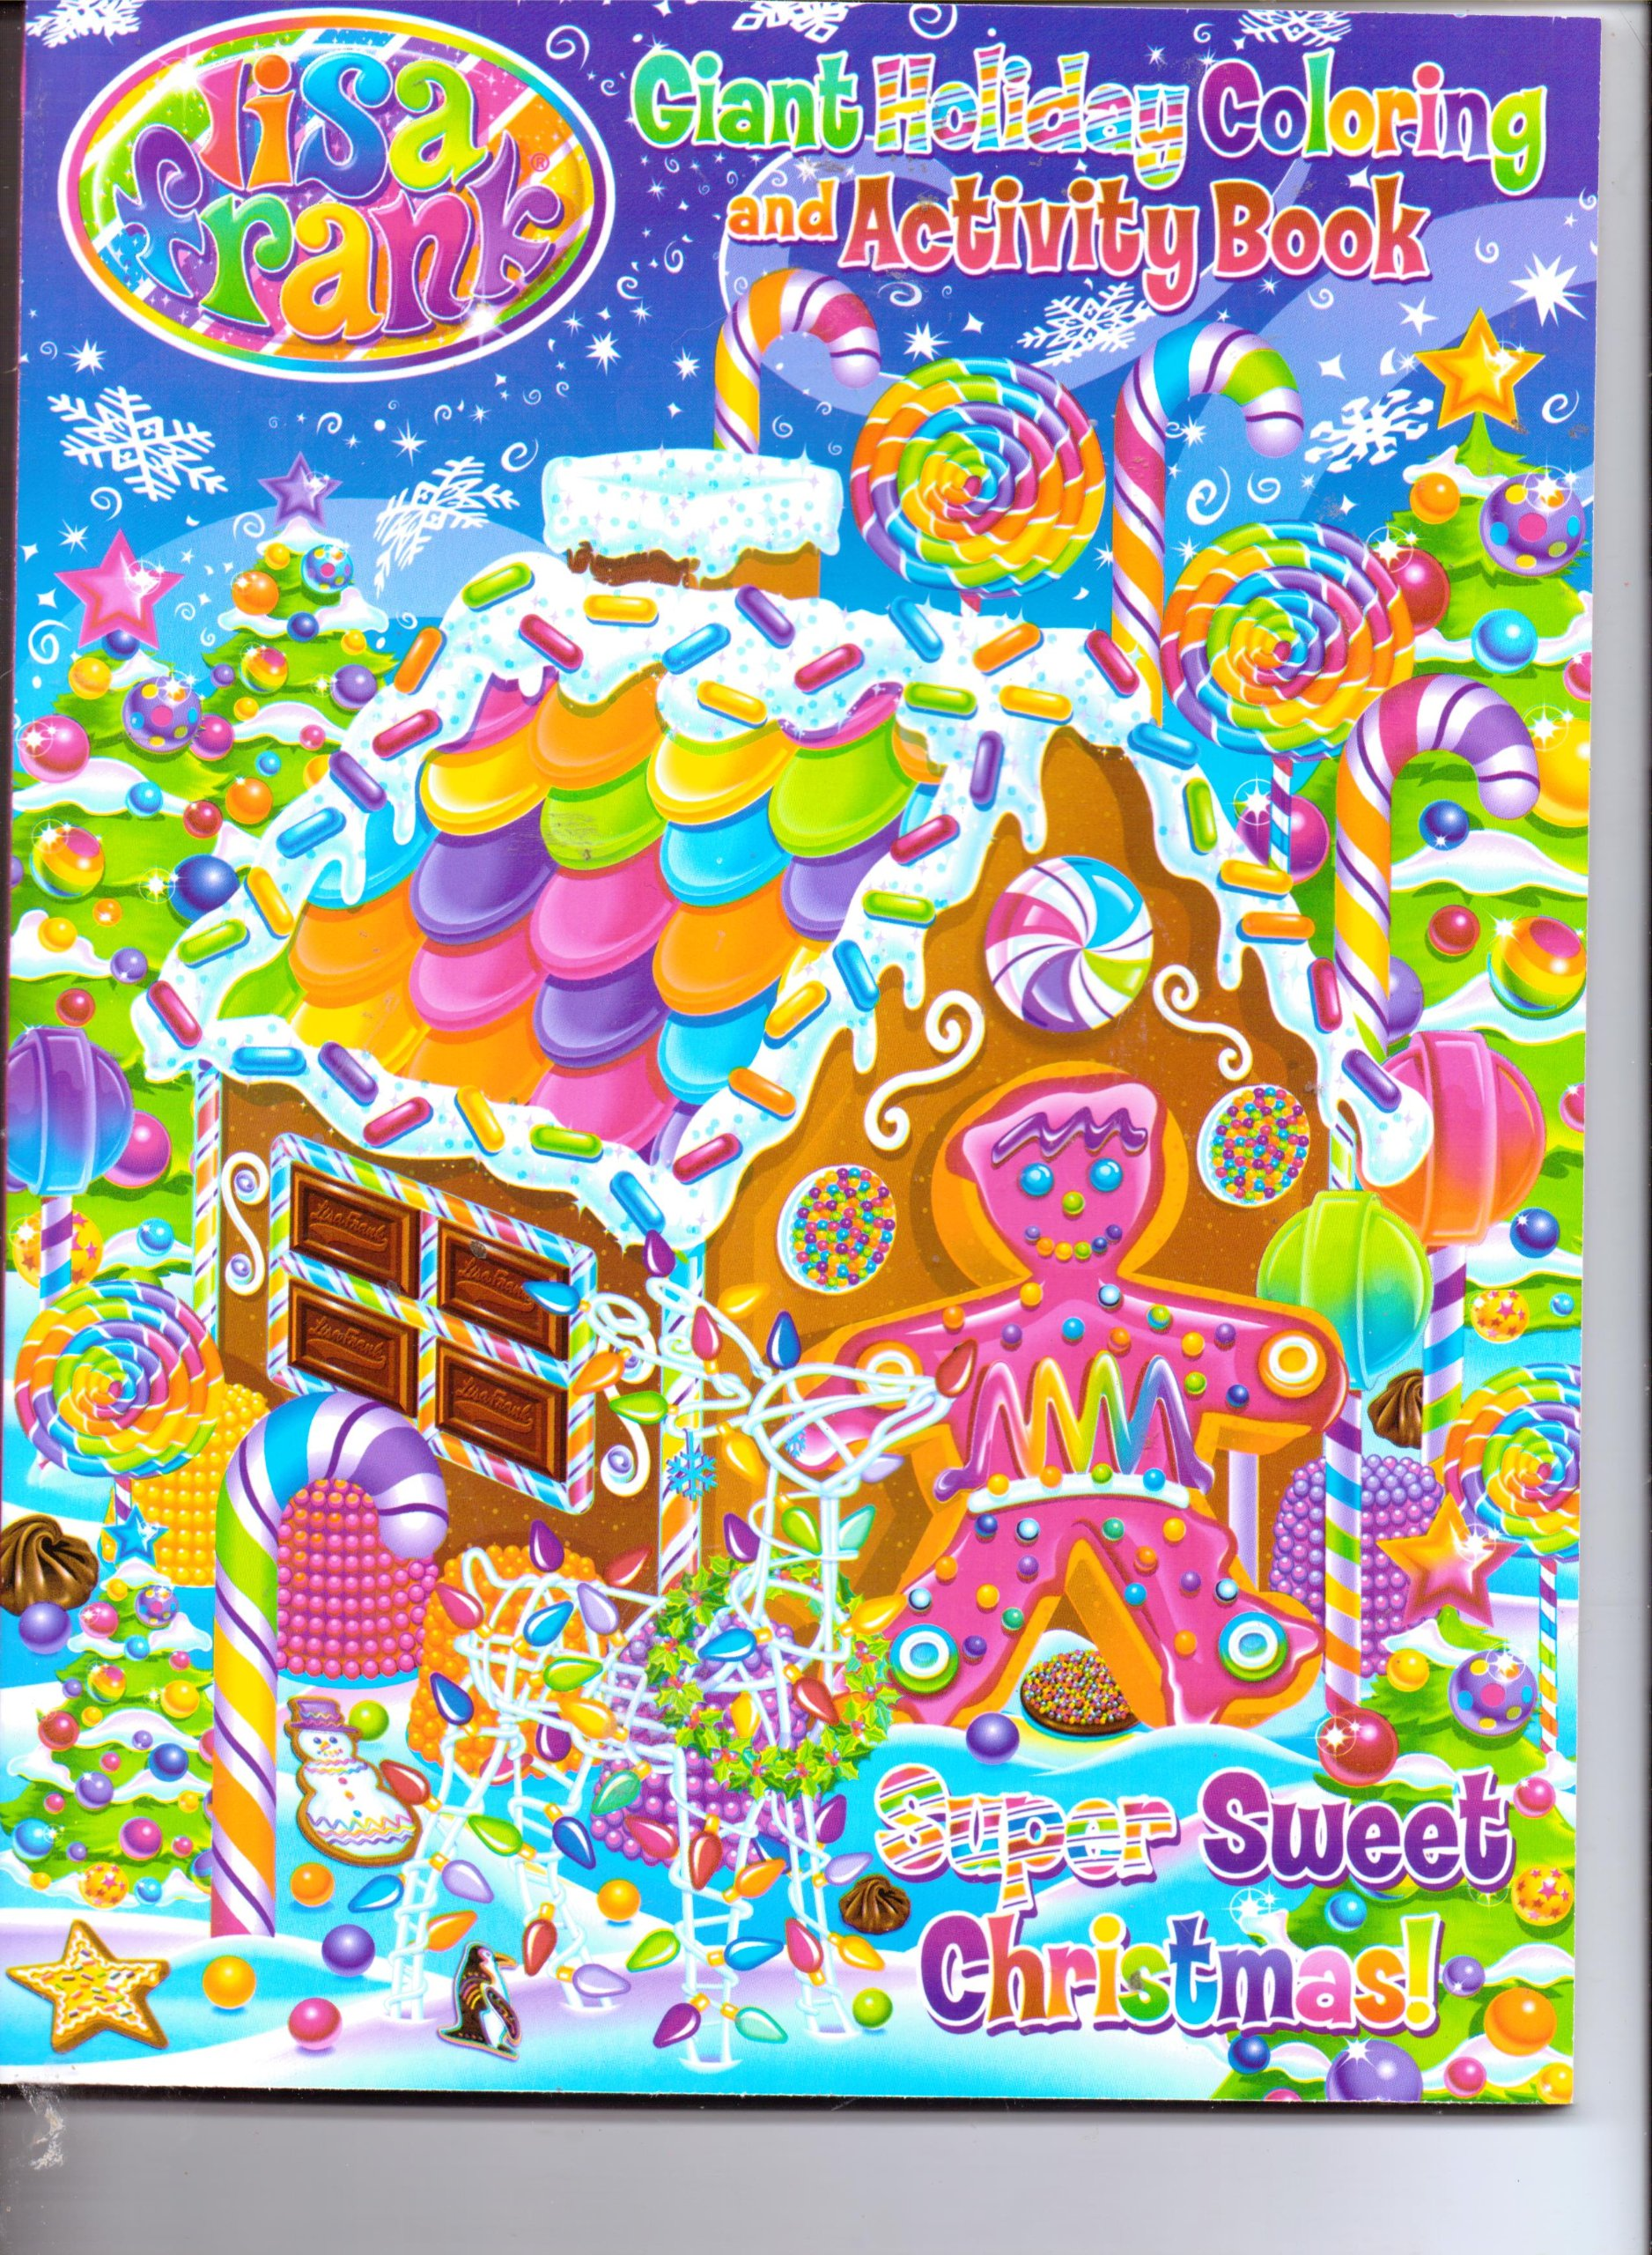 Jumbo Christmas Coloring Pages With Lisa Frank Giant Holiday Activity Book Super Sweet